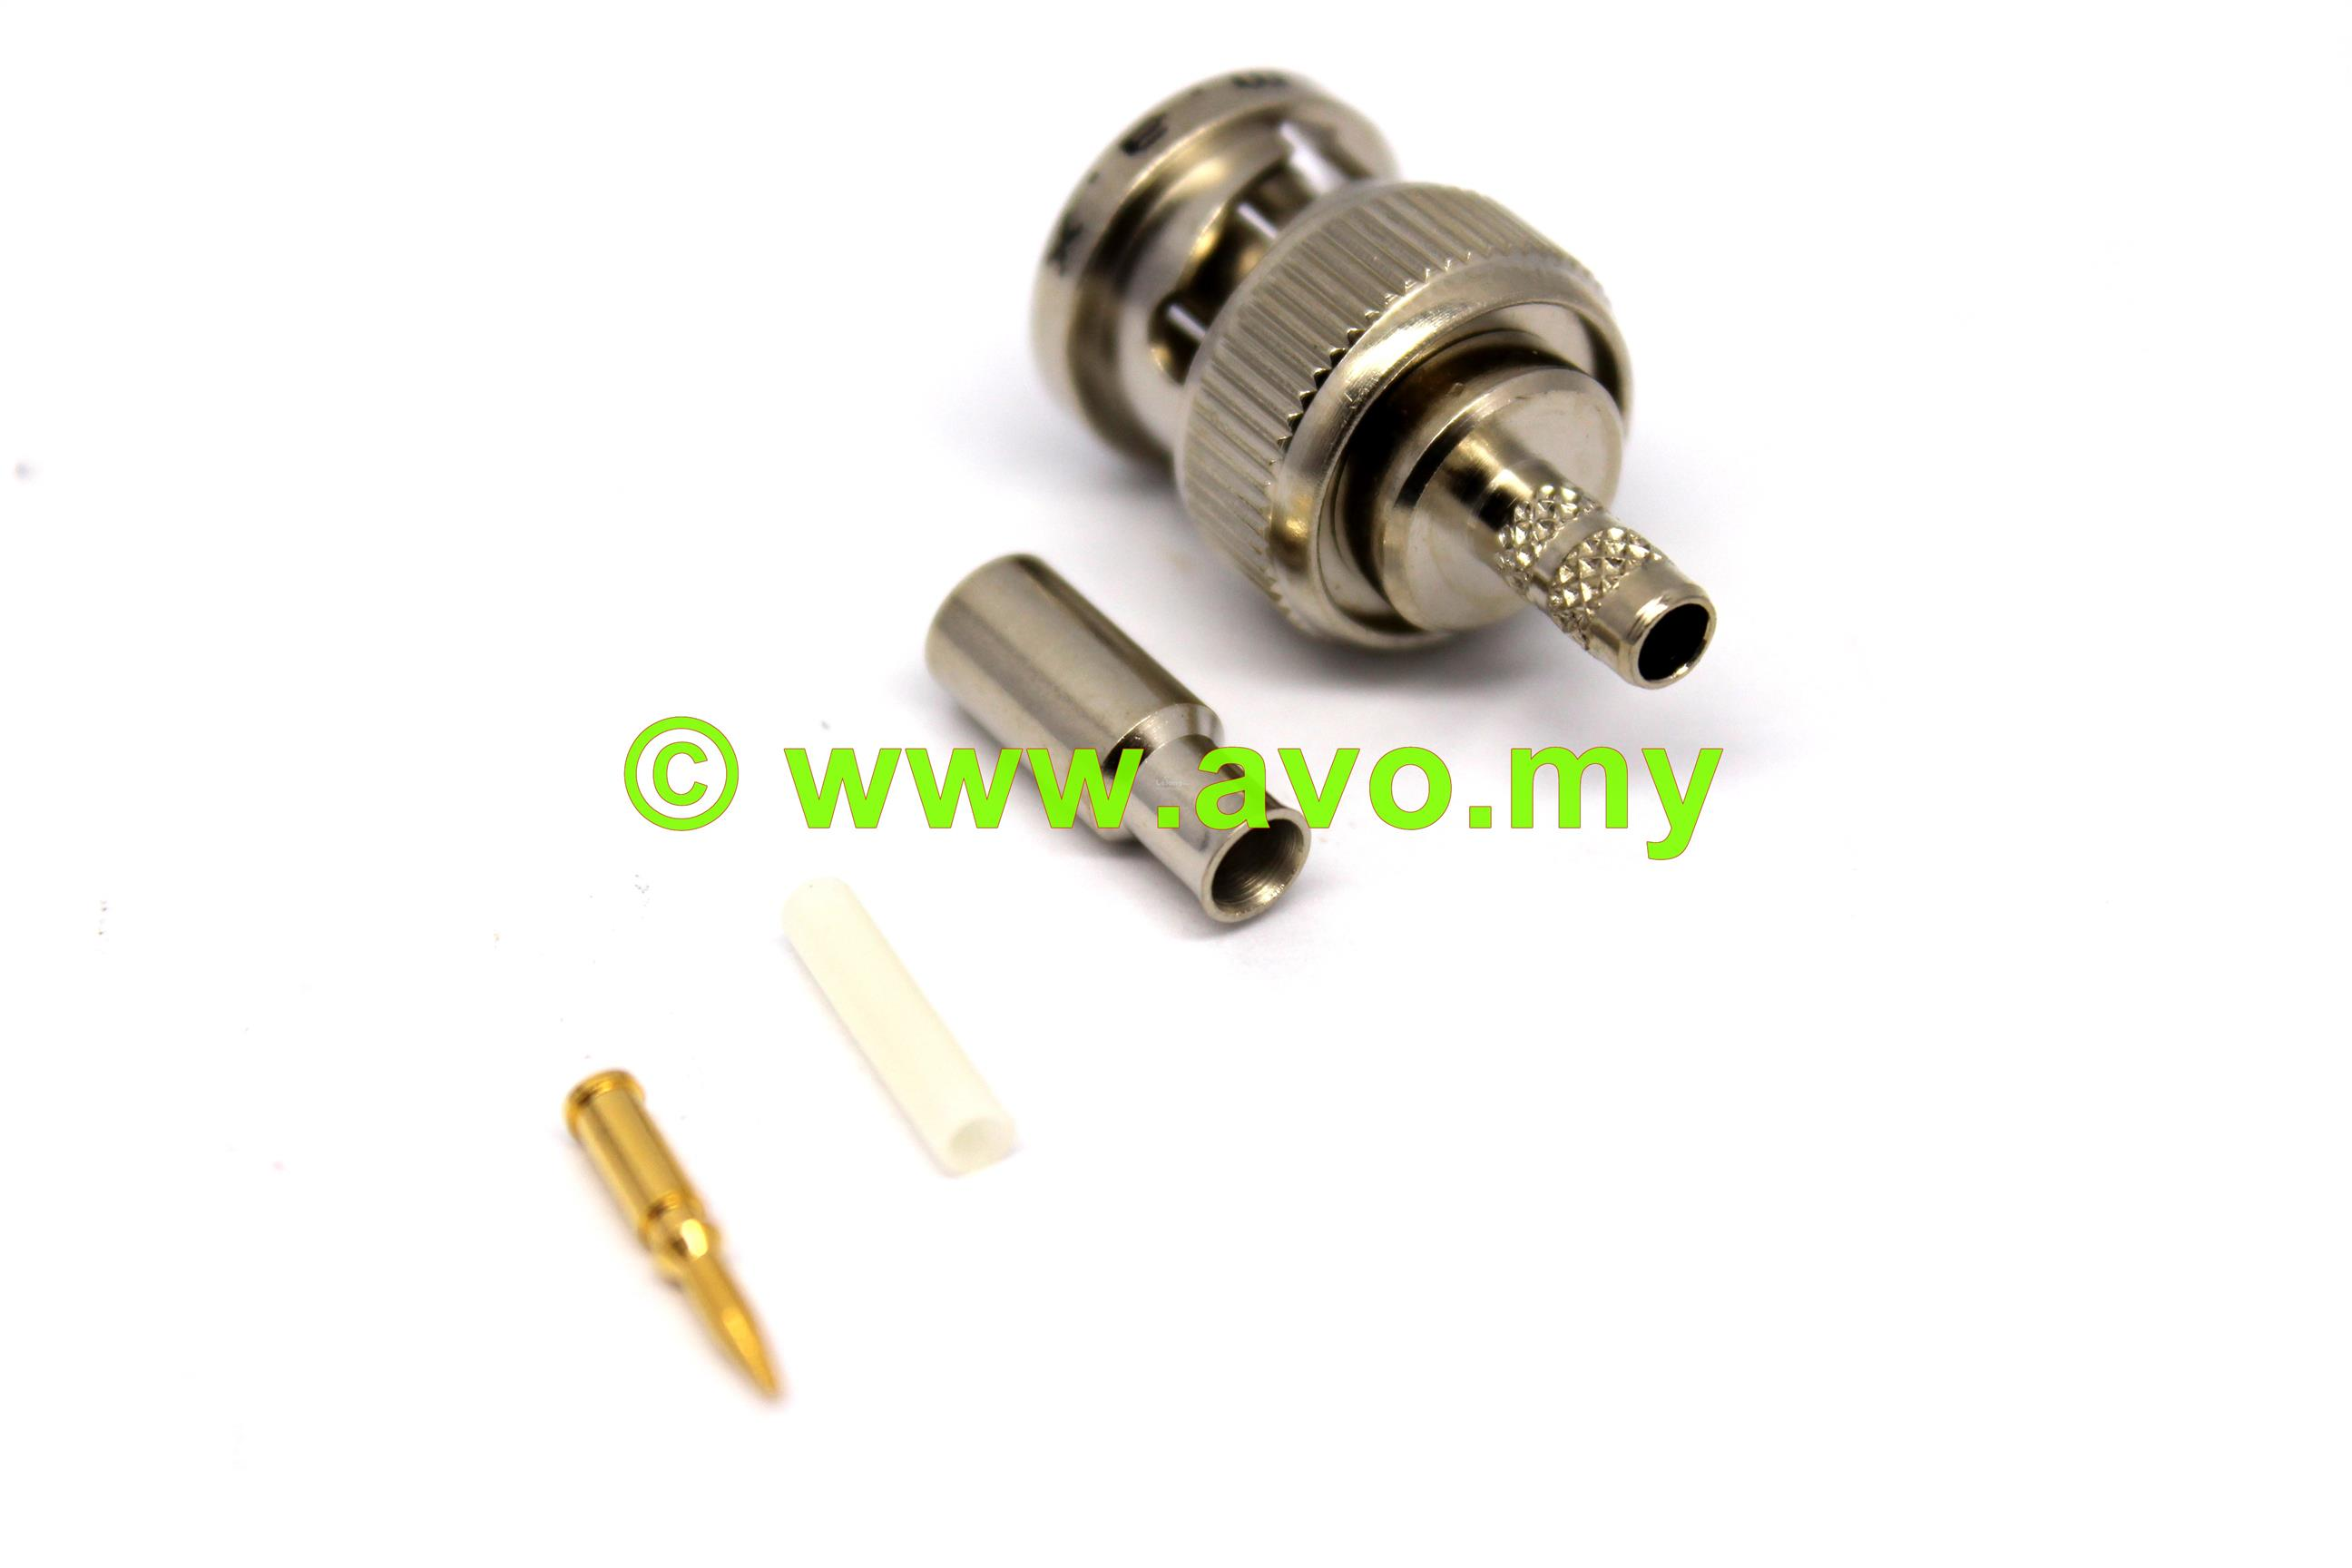 I.M.A.X BNC Crimp Plug (For RG179) | Per Pack Price (2pcs)